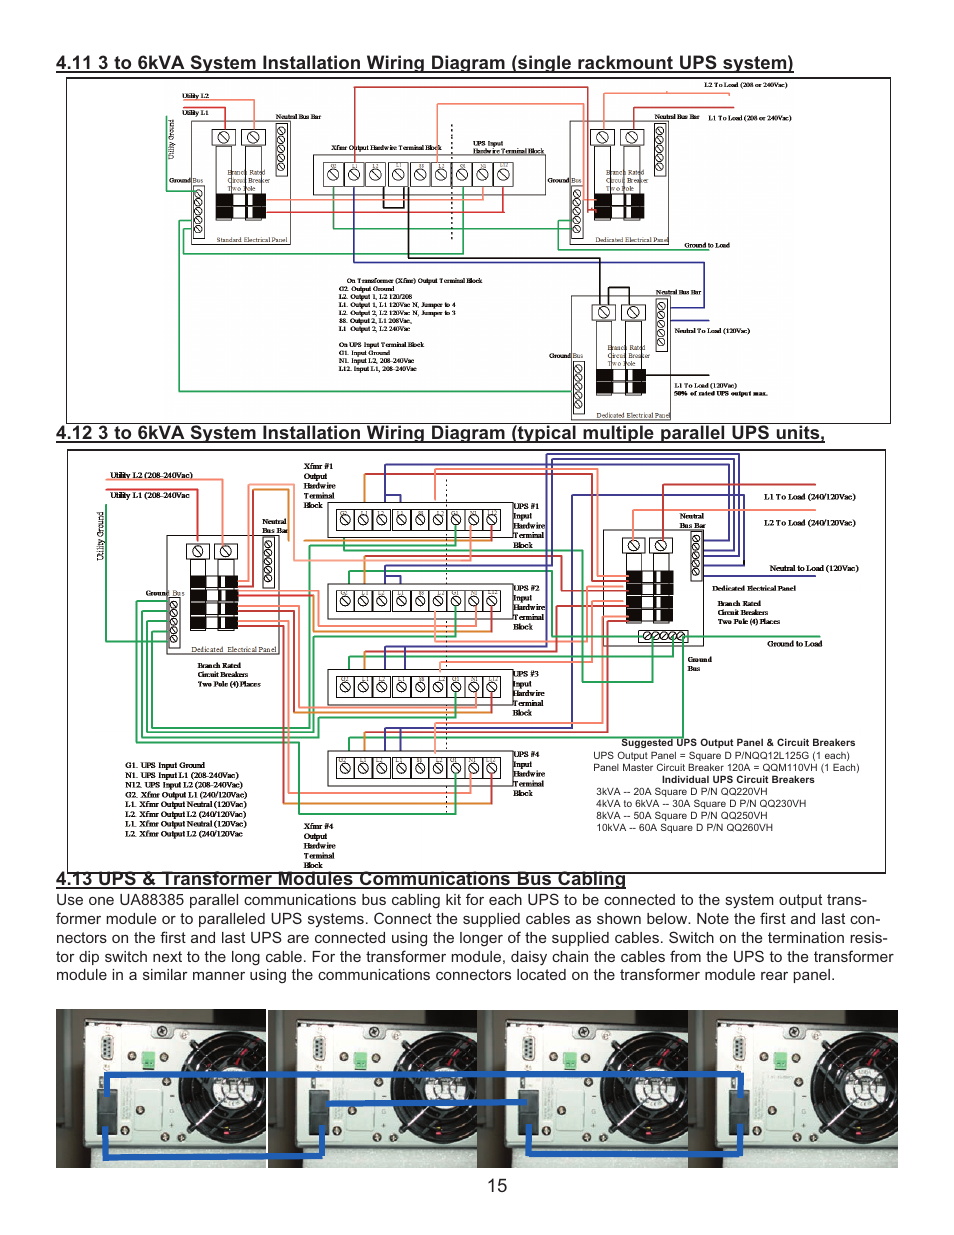 Rack Mounted Ups Wiring Diagram | Wiring Diagram on